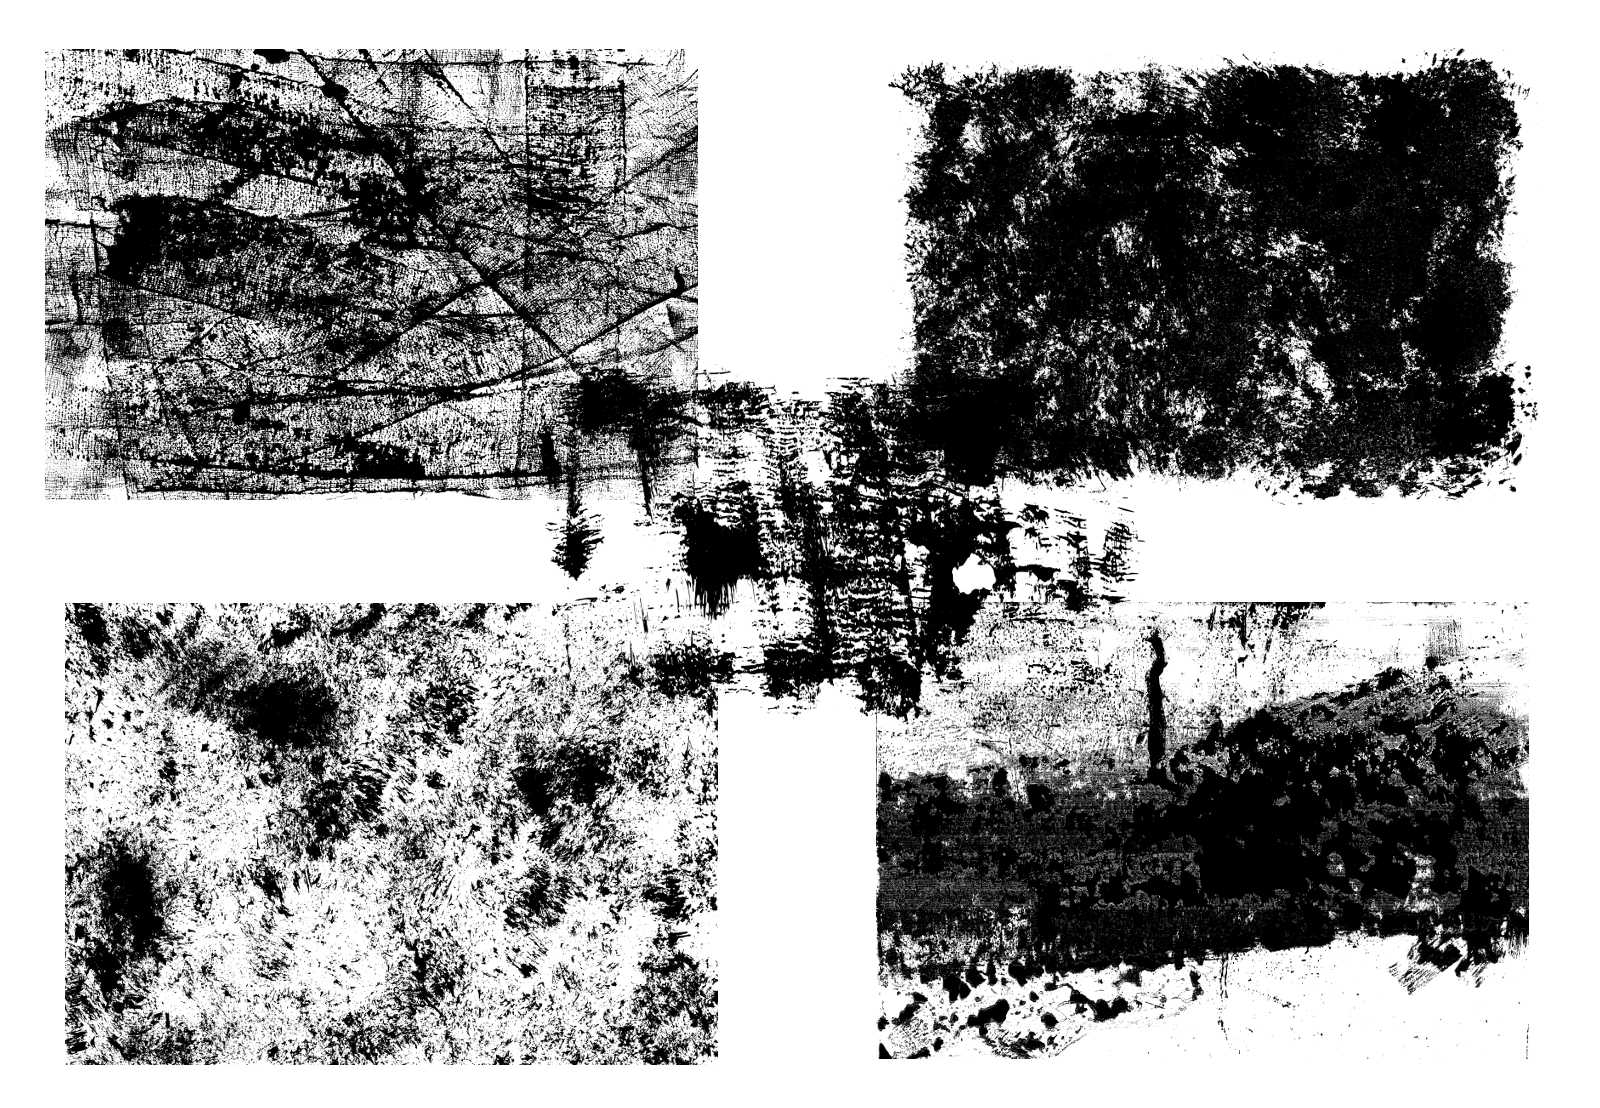 5 Grunge Overlay Textures (PNG Transparent).